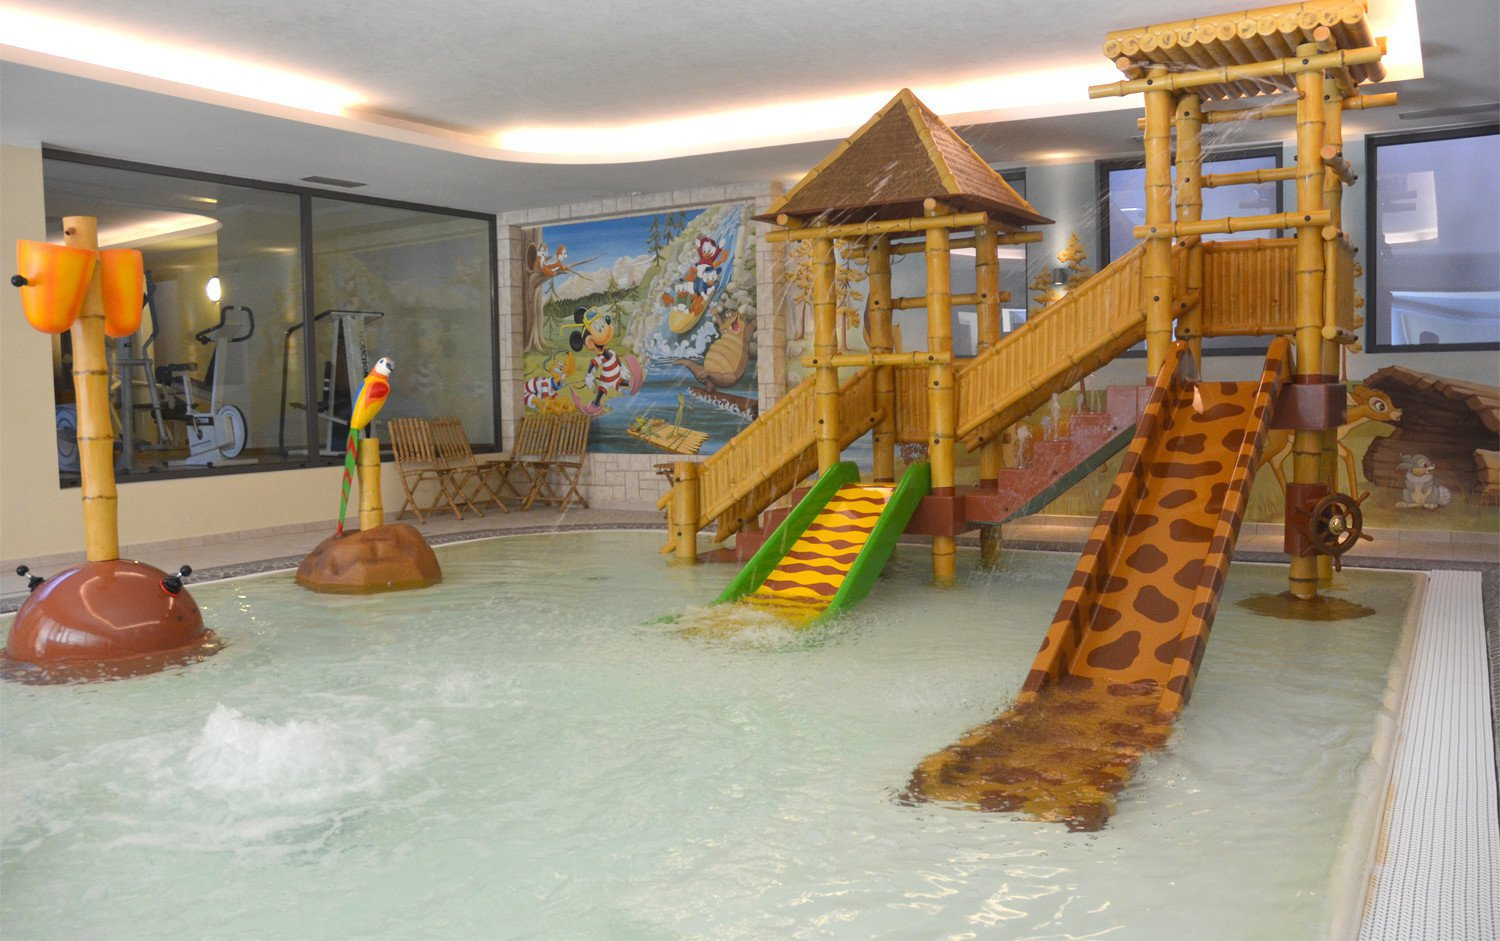 Hotel alpholiday dolomiti wellness fun in val di sole - Hotel trentino con piscina ...